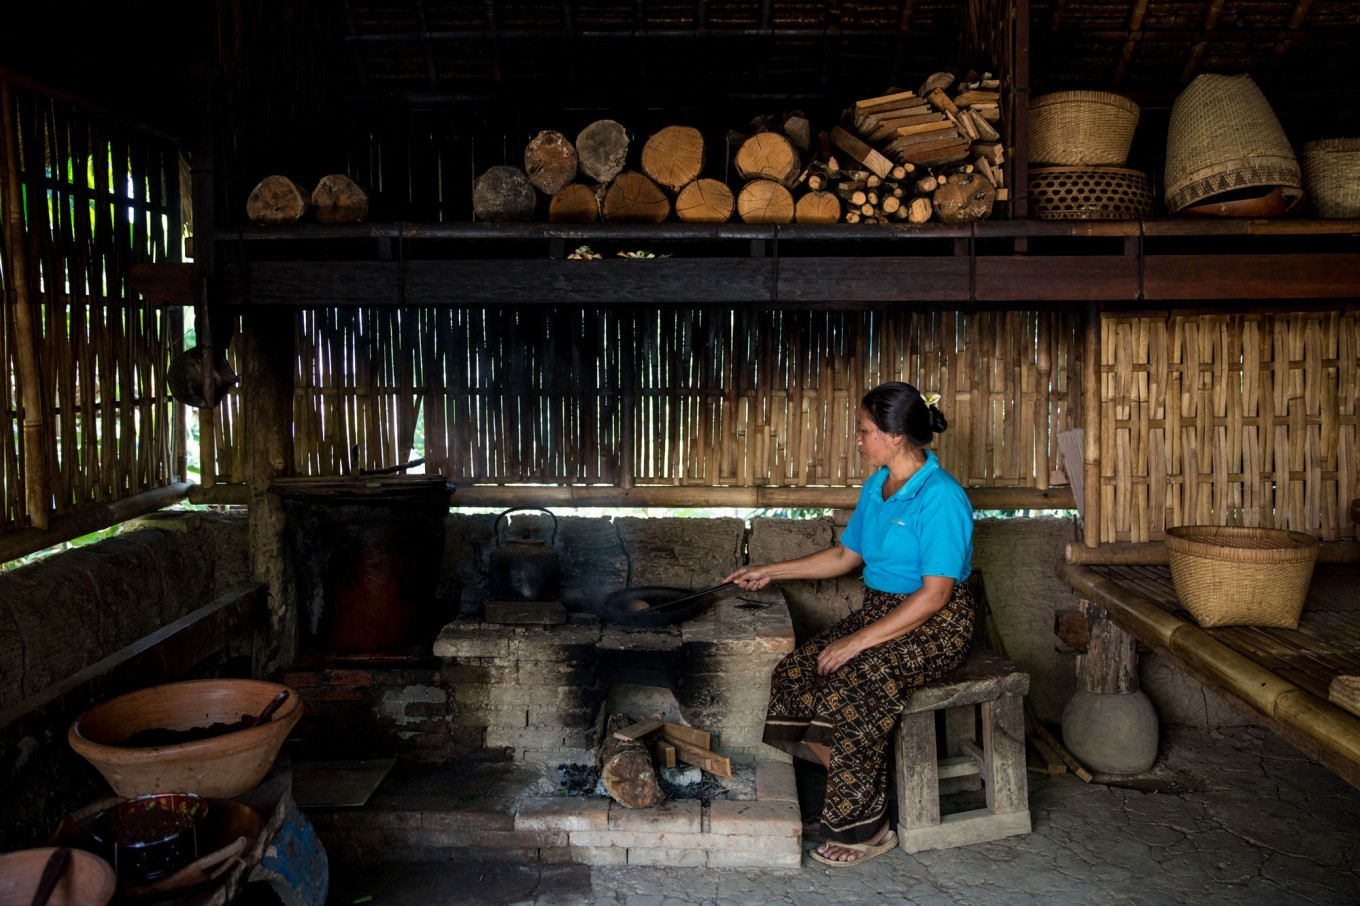 A woman roasts coffee beans at Bali Pulina in Tegalalang, Bali. The agrotourism center is widely known in Bali as a place to enjoy luwak coffee. JP/Agung Parameswara